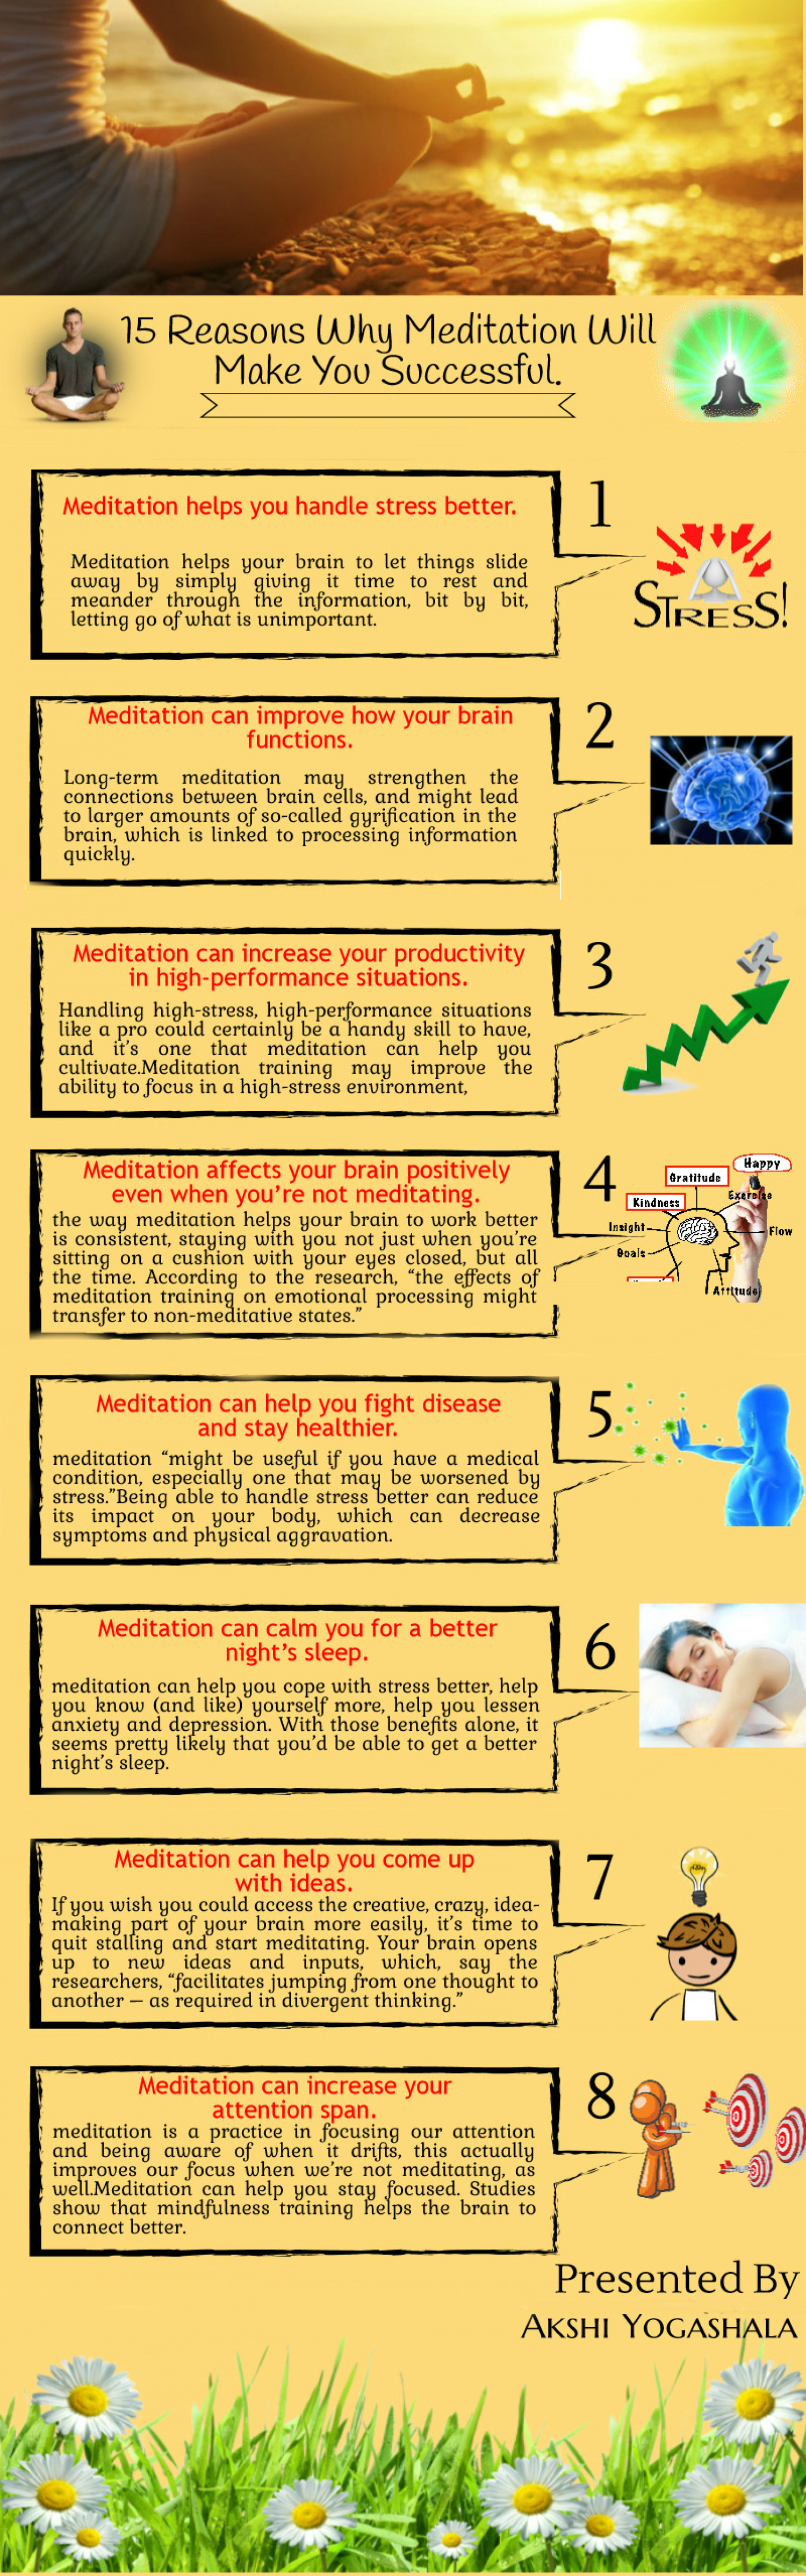 8 Reasons Why Meditation Will Make You Successful Infographic